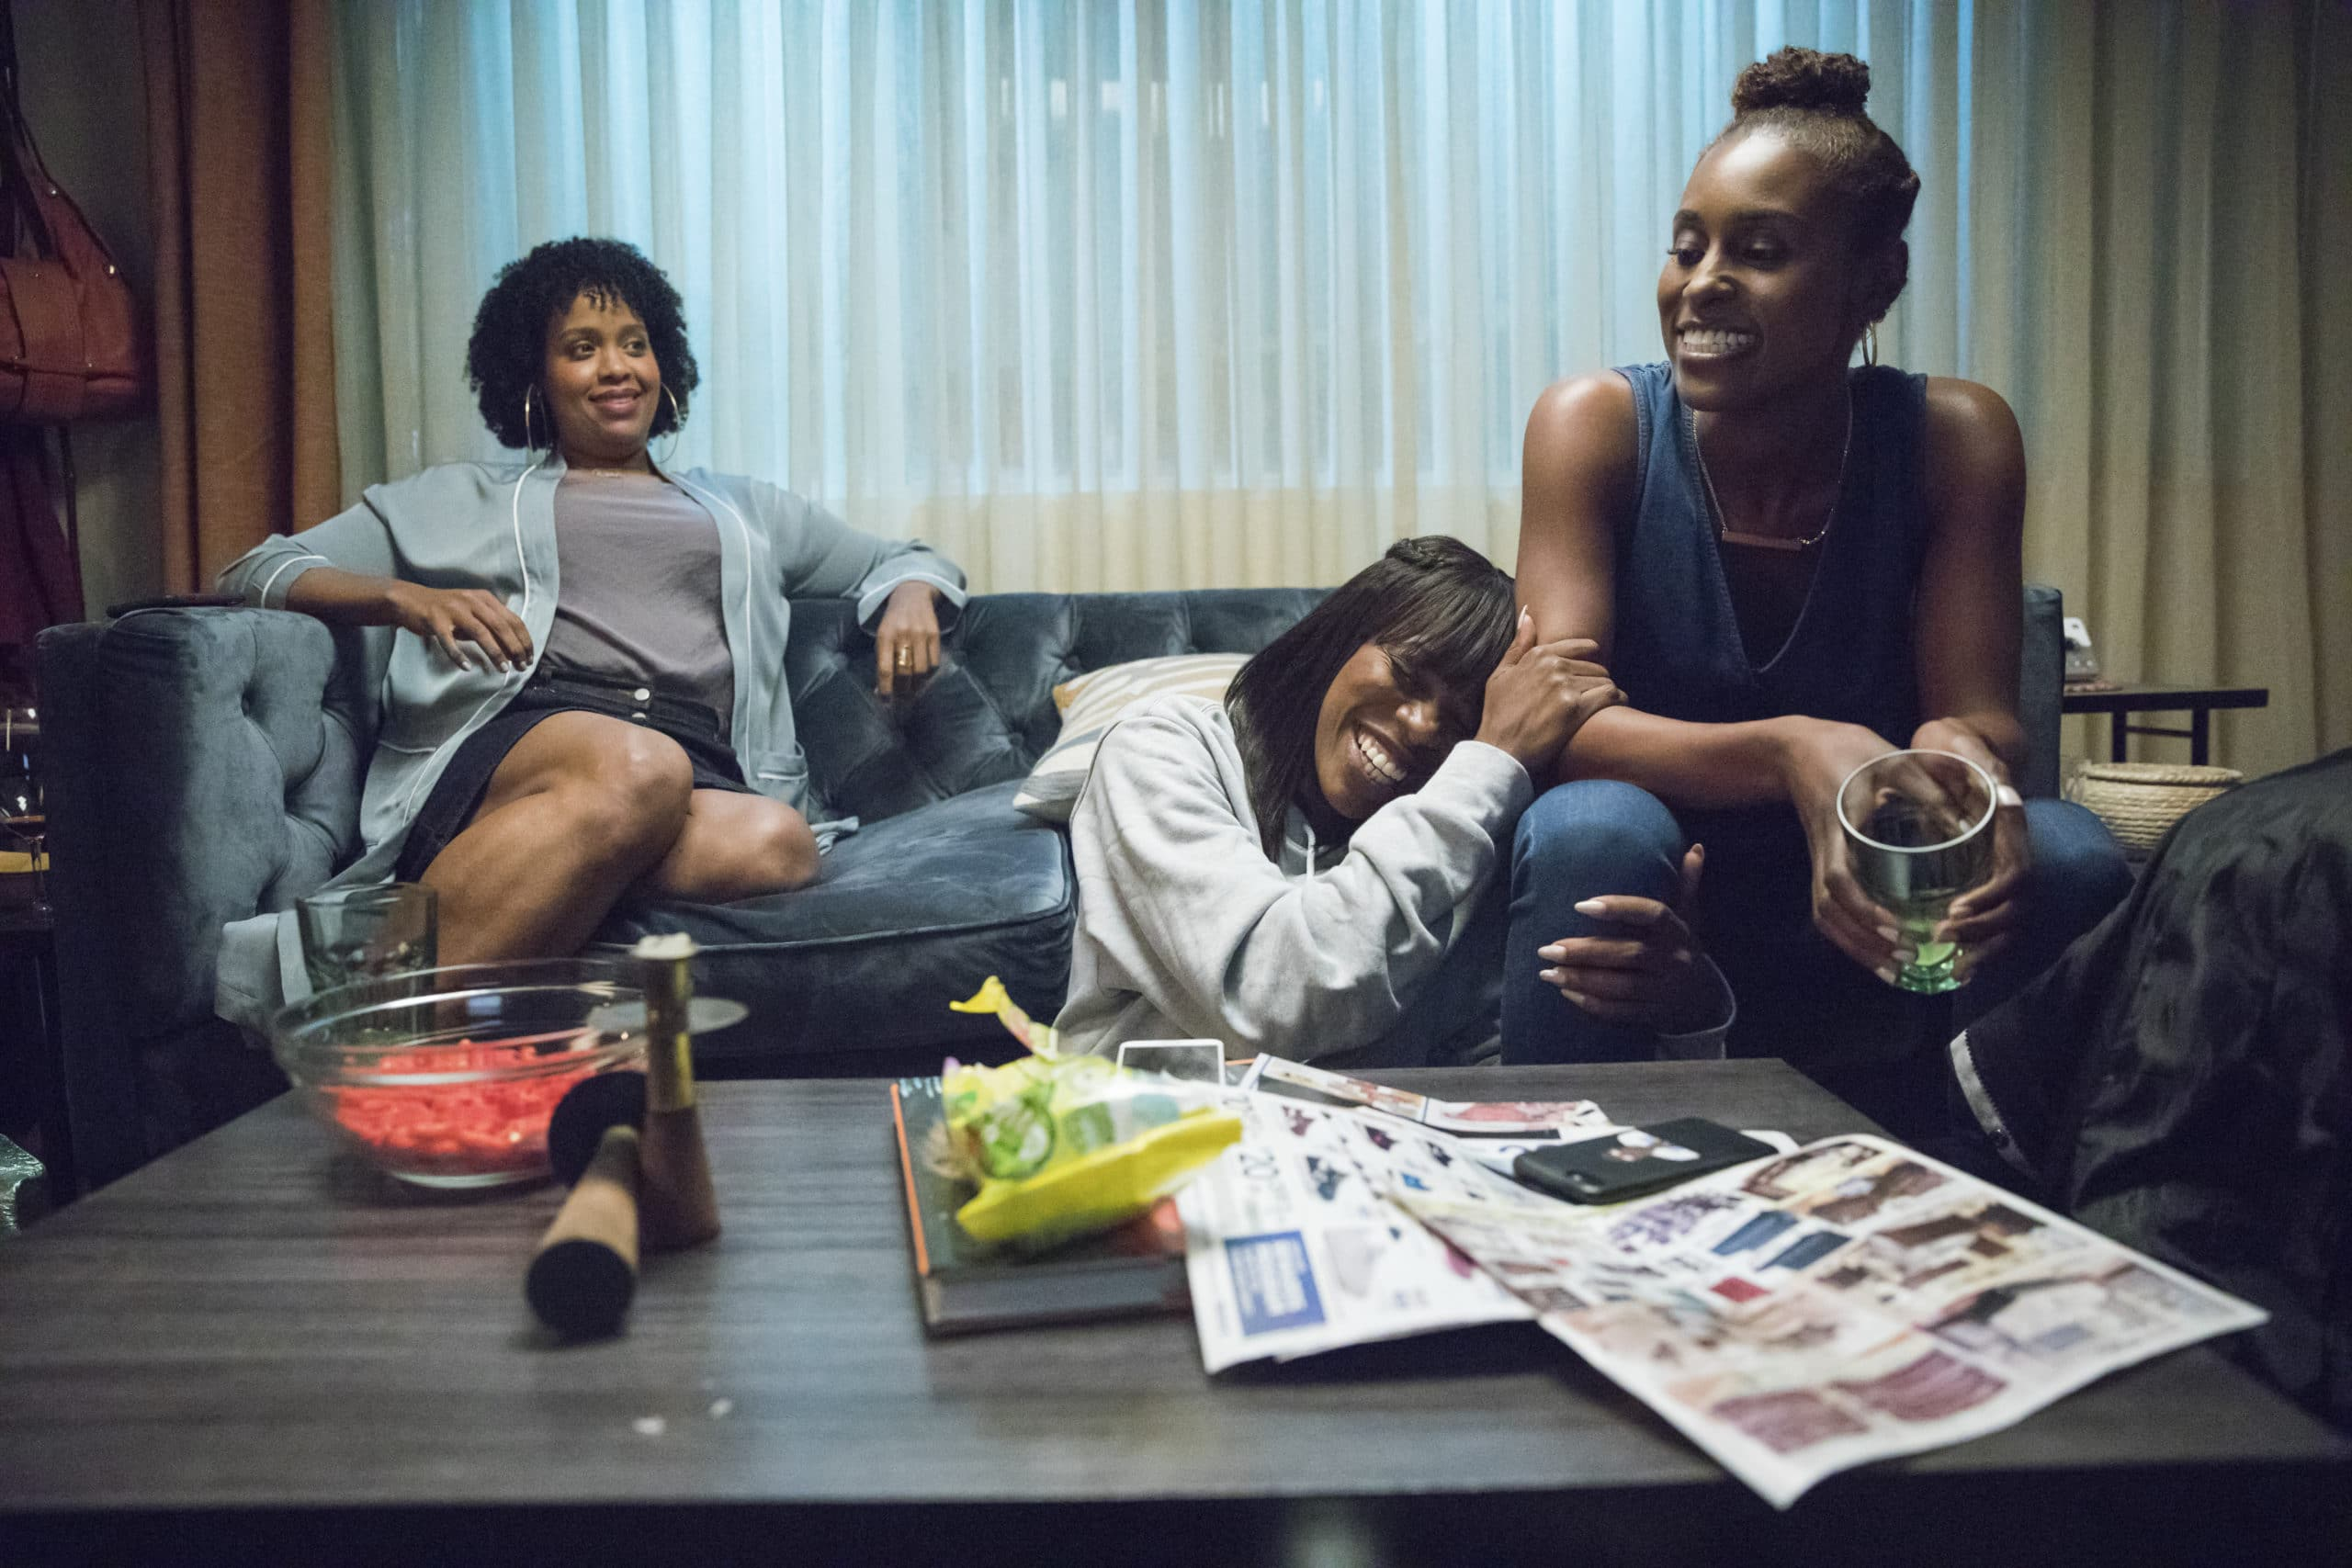 Insecure. Instead of getting down and out about having to shelter in place away from your girl squad, have a girls night in and get lost in these Top 10 binge worthy female-centric TV series that have strong female leads and will give you the girl-power you have been missing!